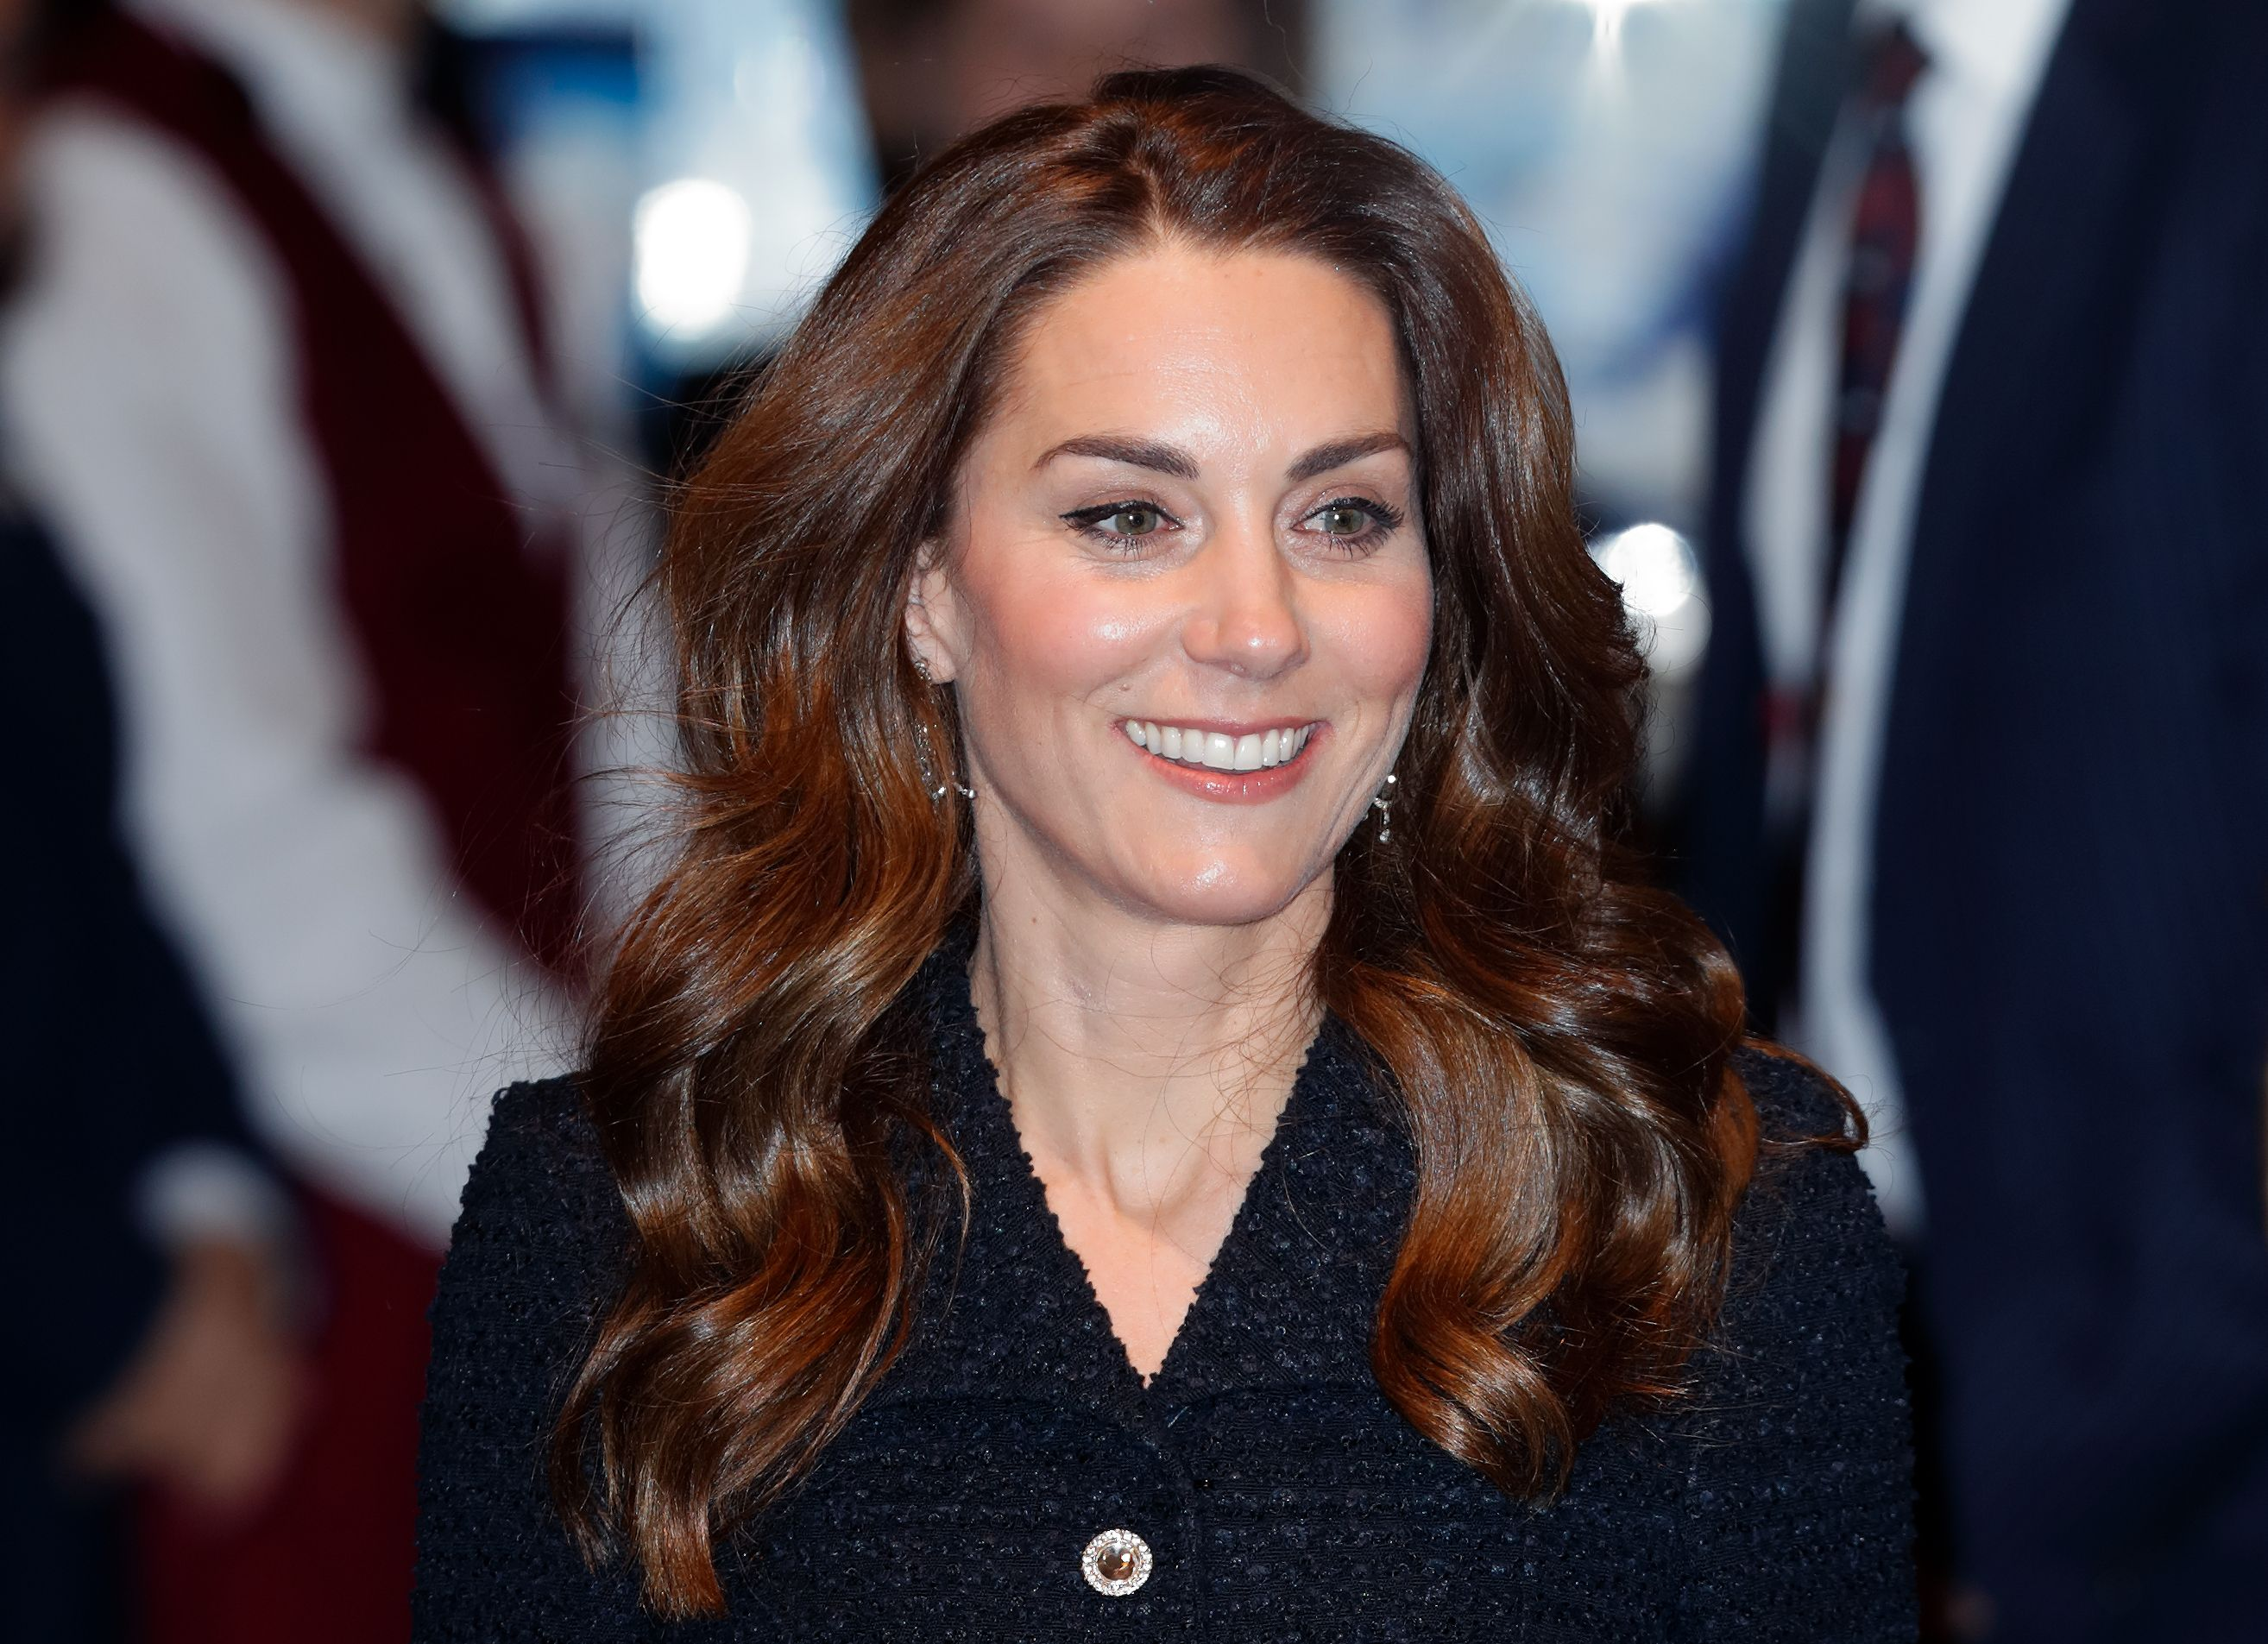 Kate Middleton Wears All The Sparkles For Rare Date Night Out At The Theatre